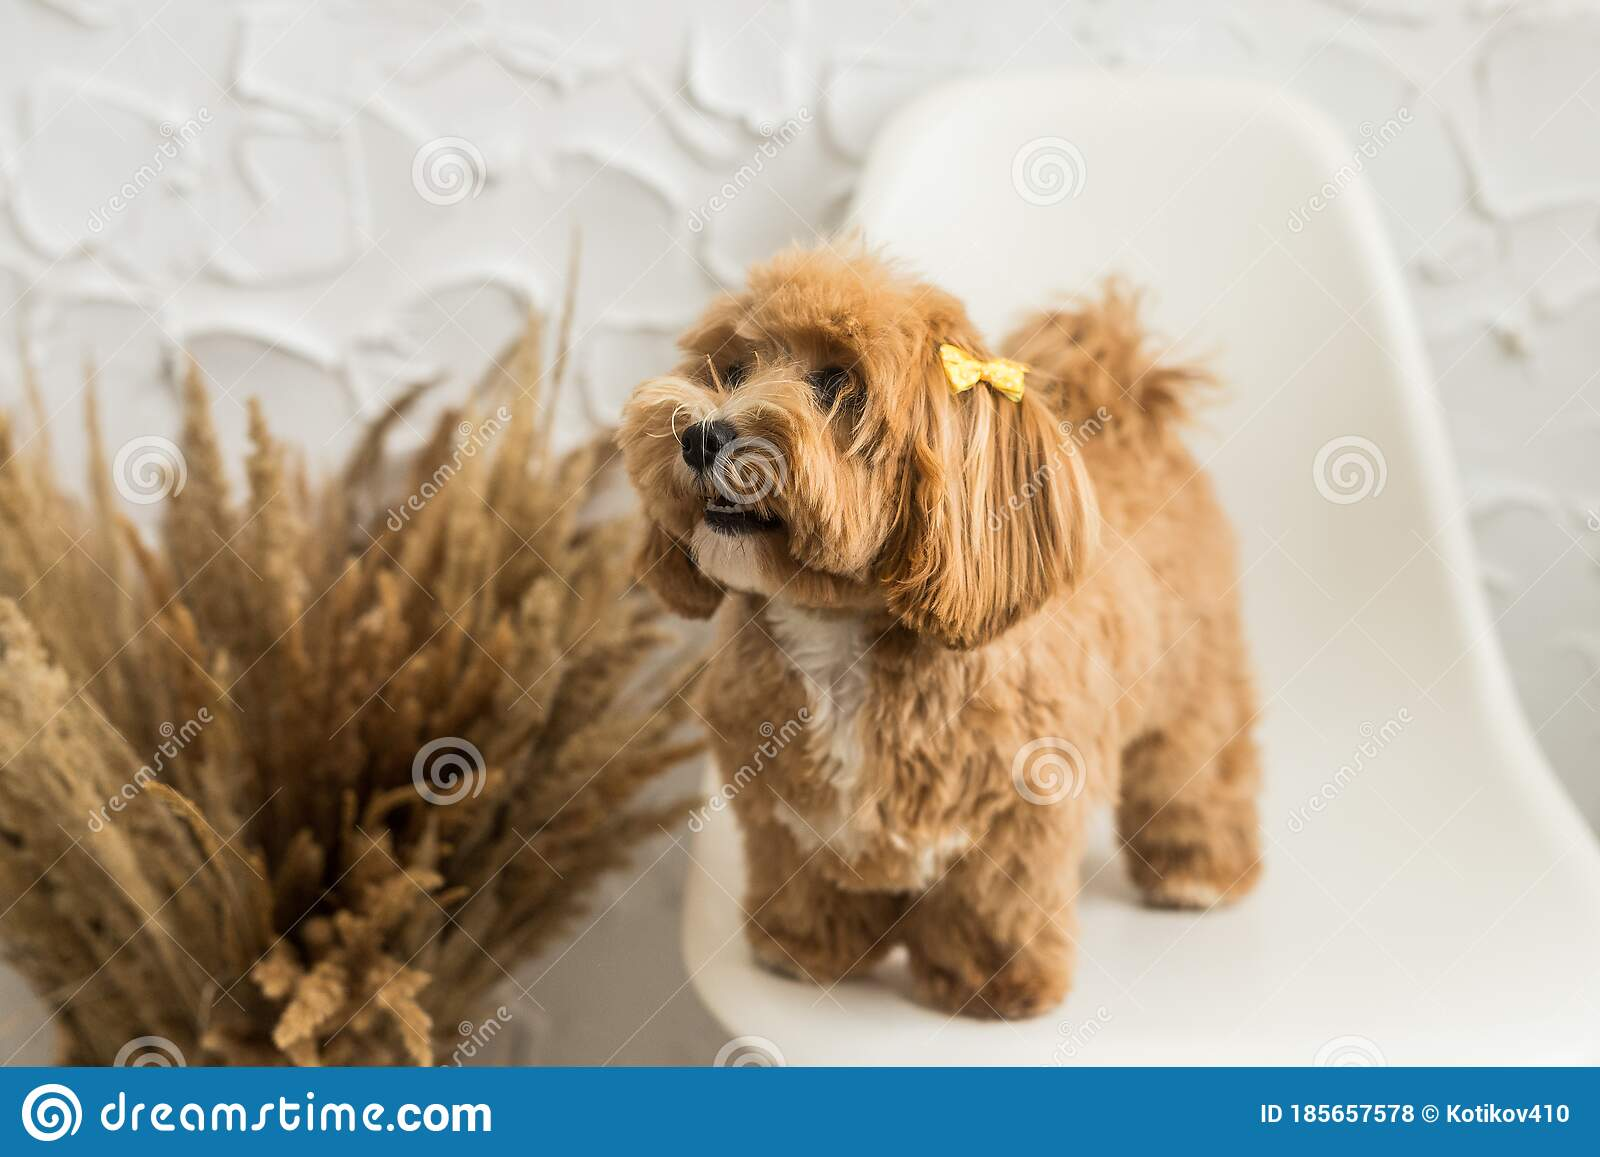 Smiling Toy Poodle Stand On White Chair And Show Tongue In Camera Stock Photo Image Of Funny Sitting 185657578